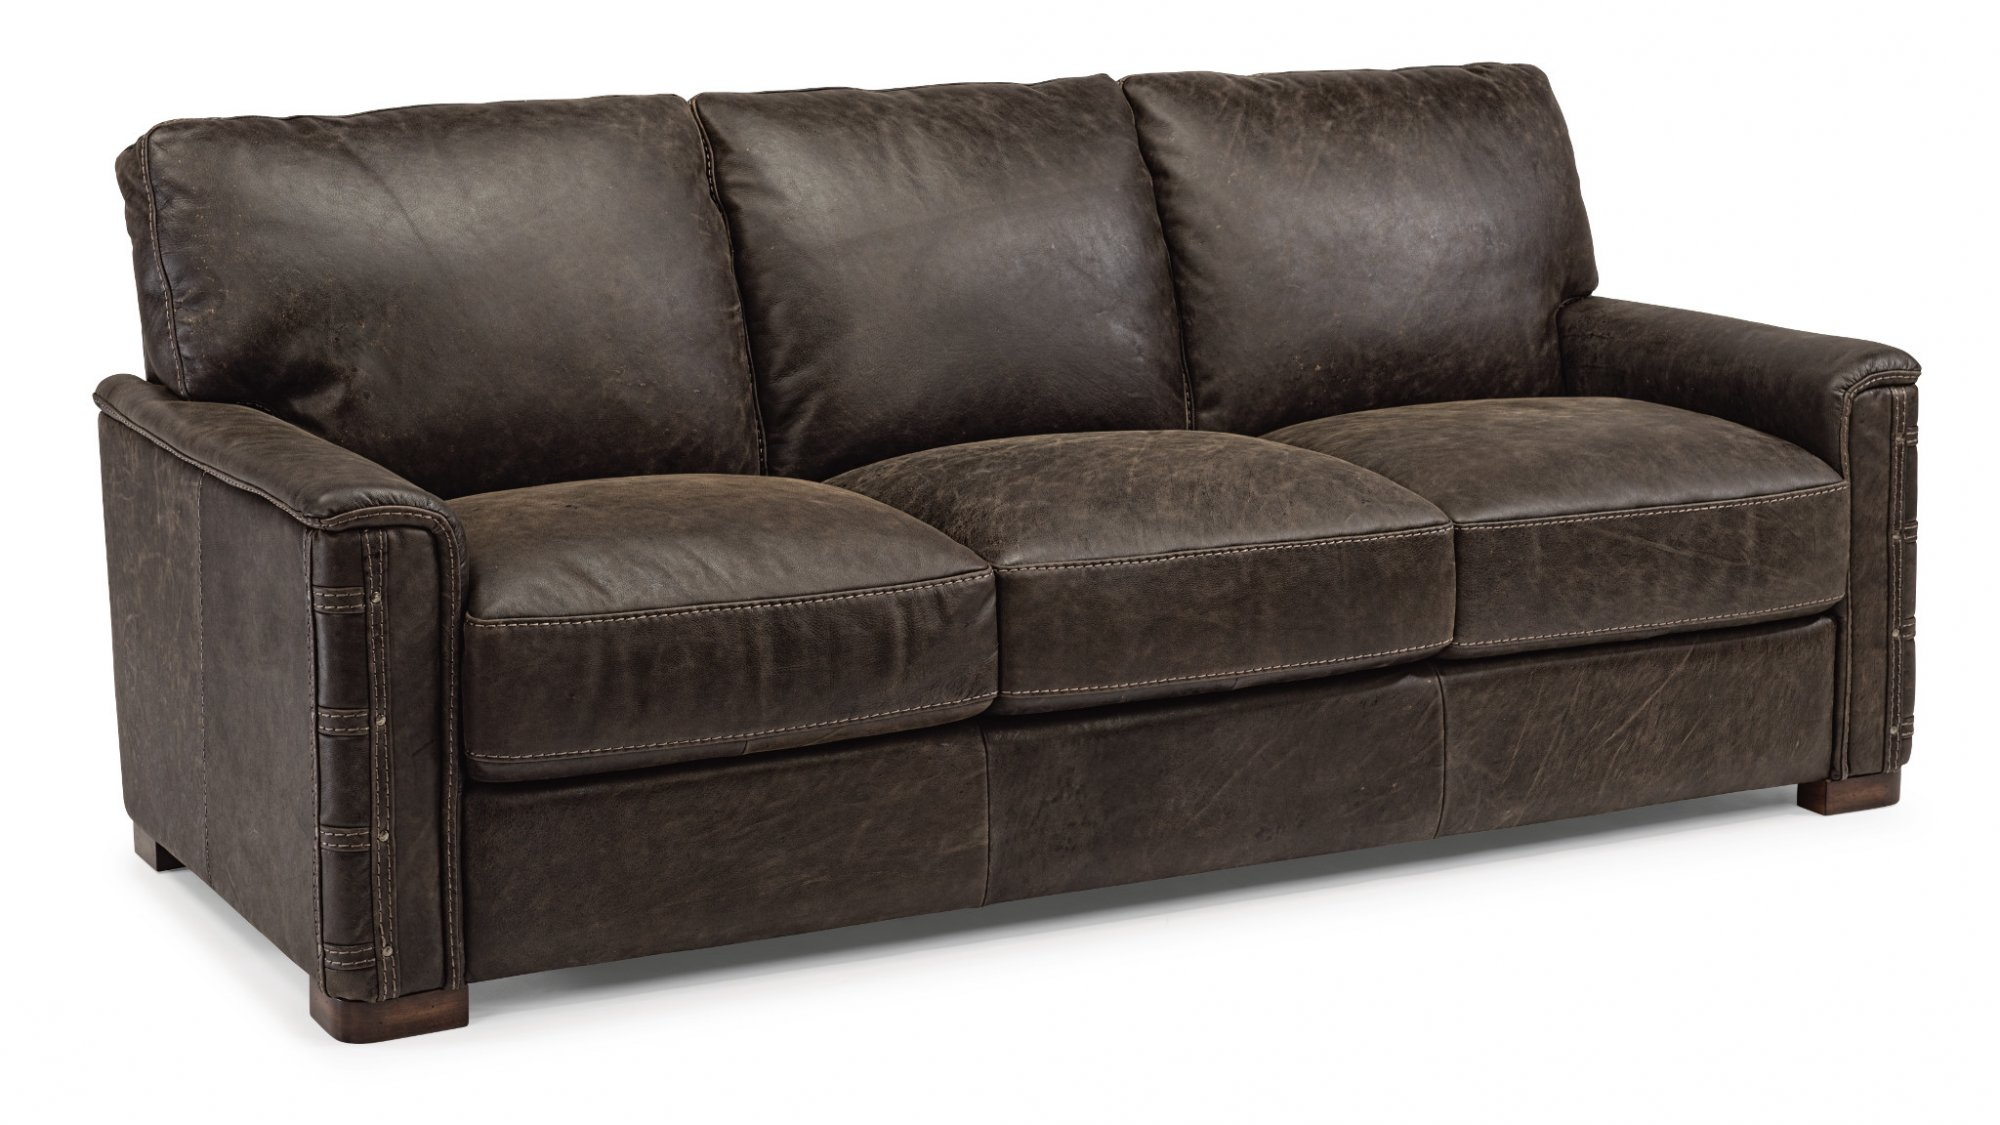 Sofas and loveseats reclining sofas and sleepers flexsteel leather sofa parisarafo Gallery